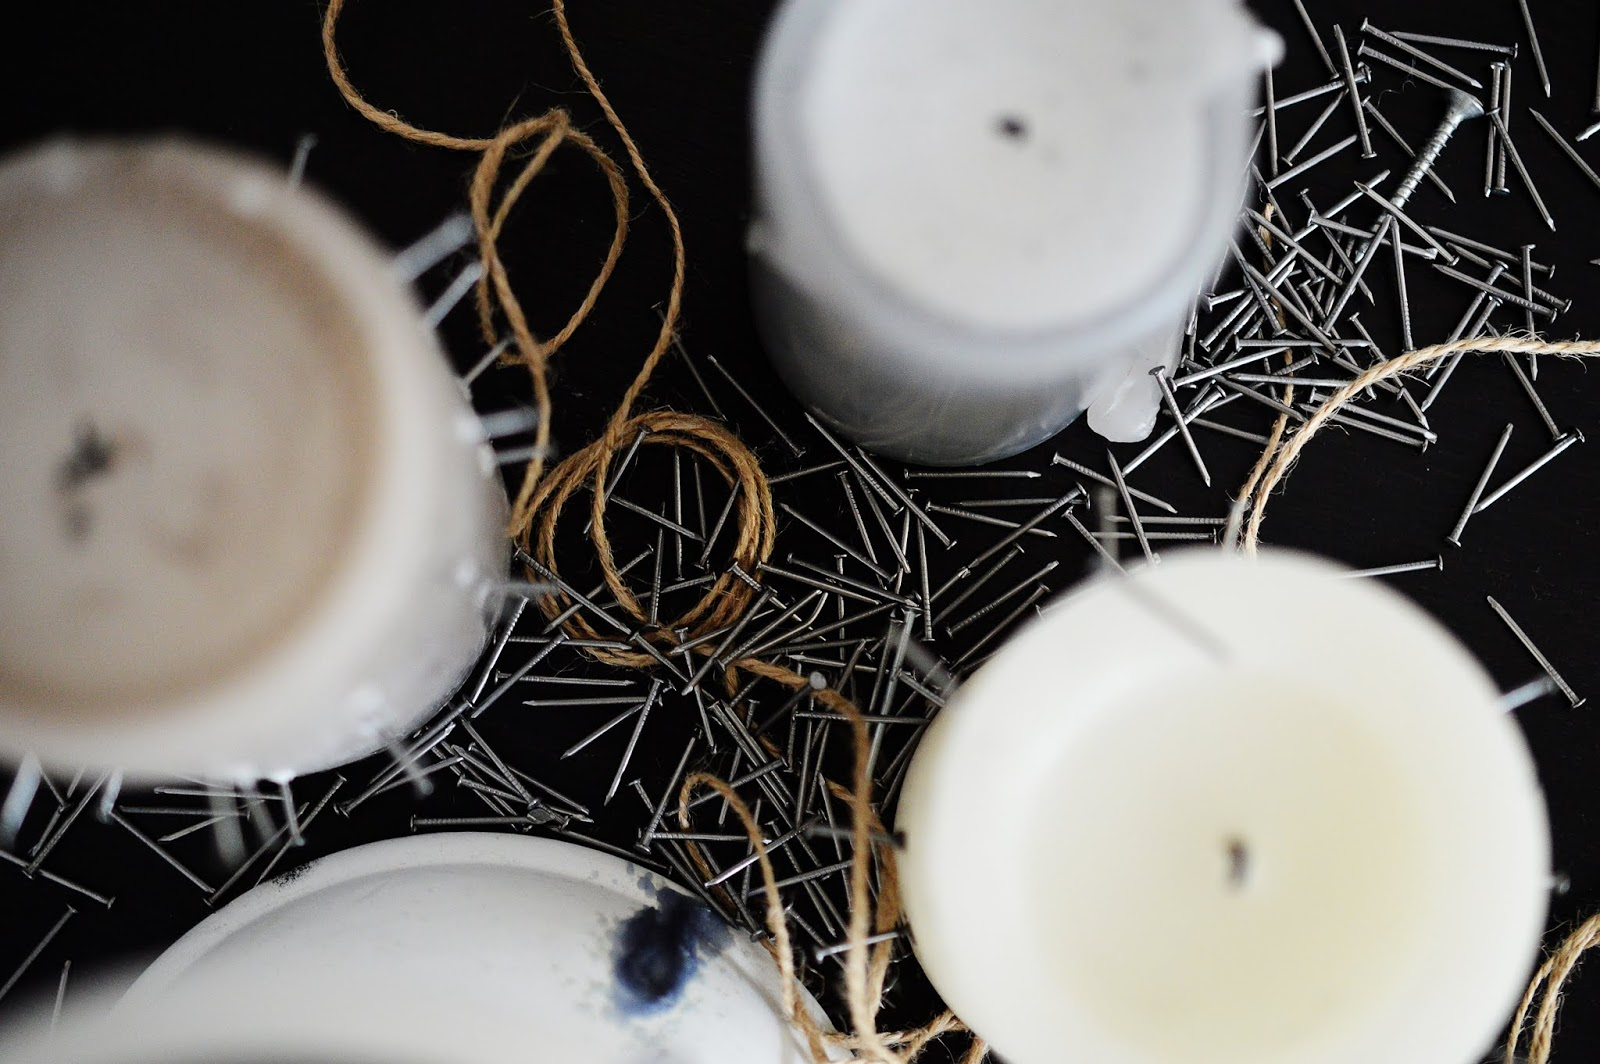 candles photographed from above with needles coming out from the sides